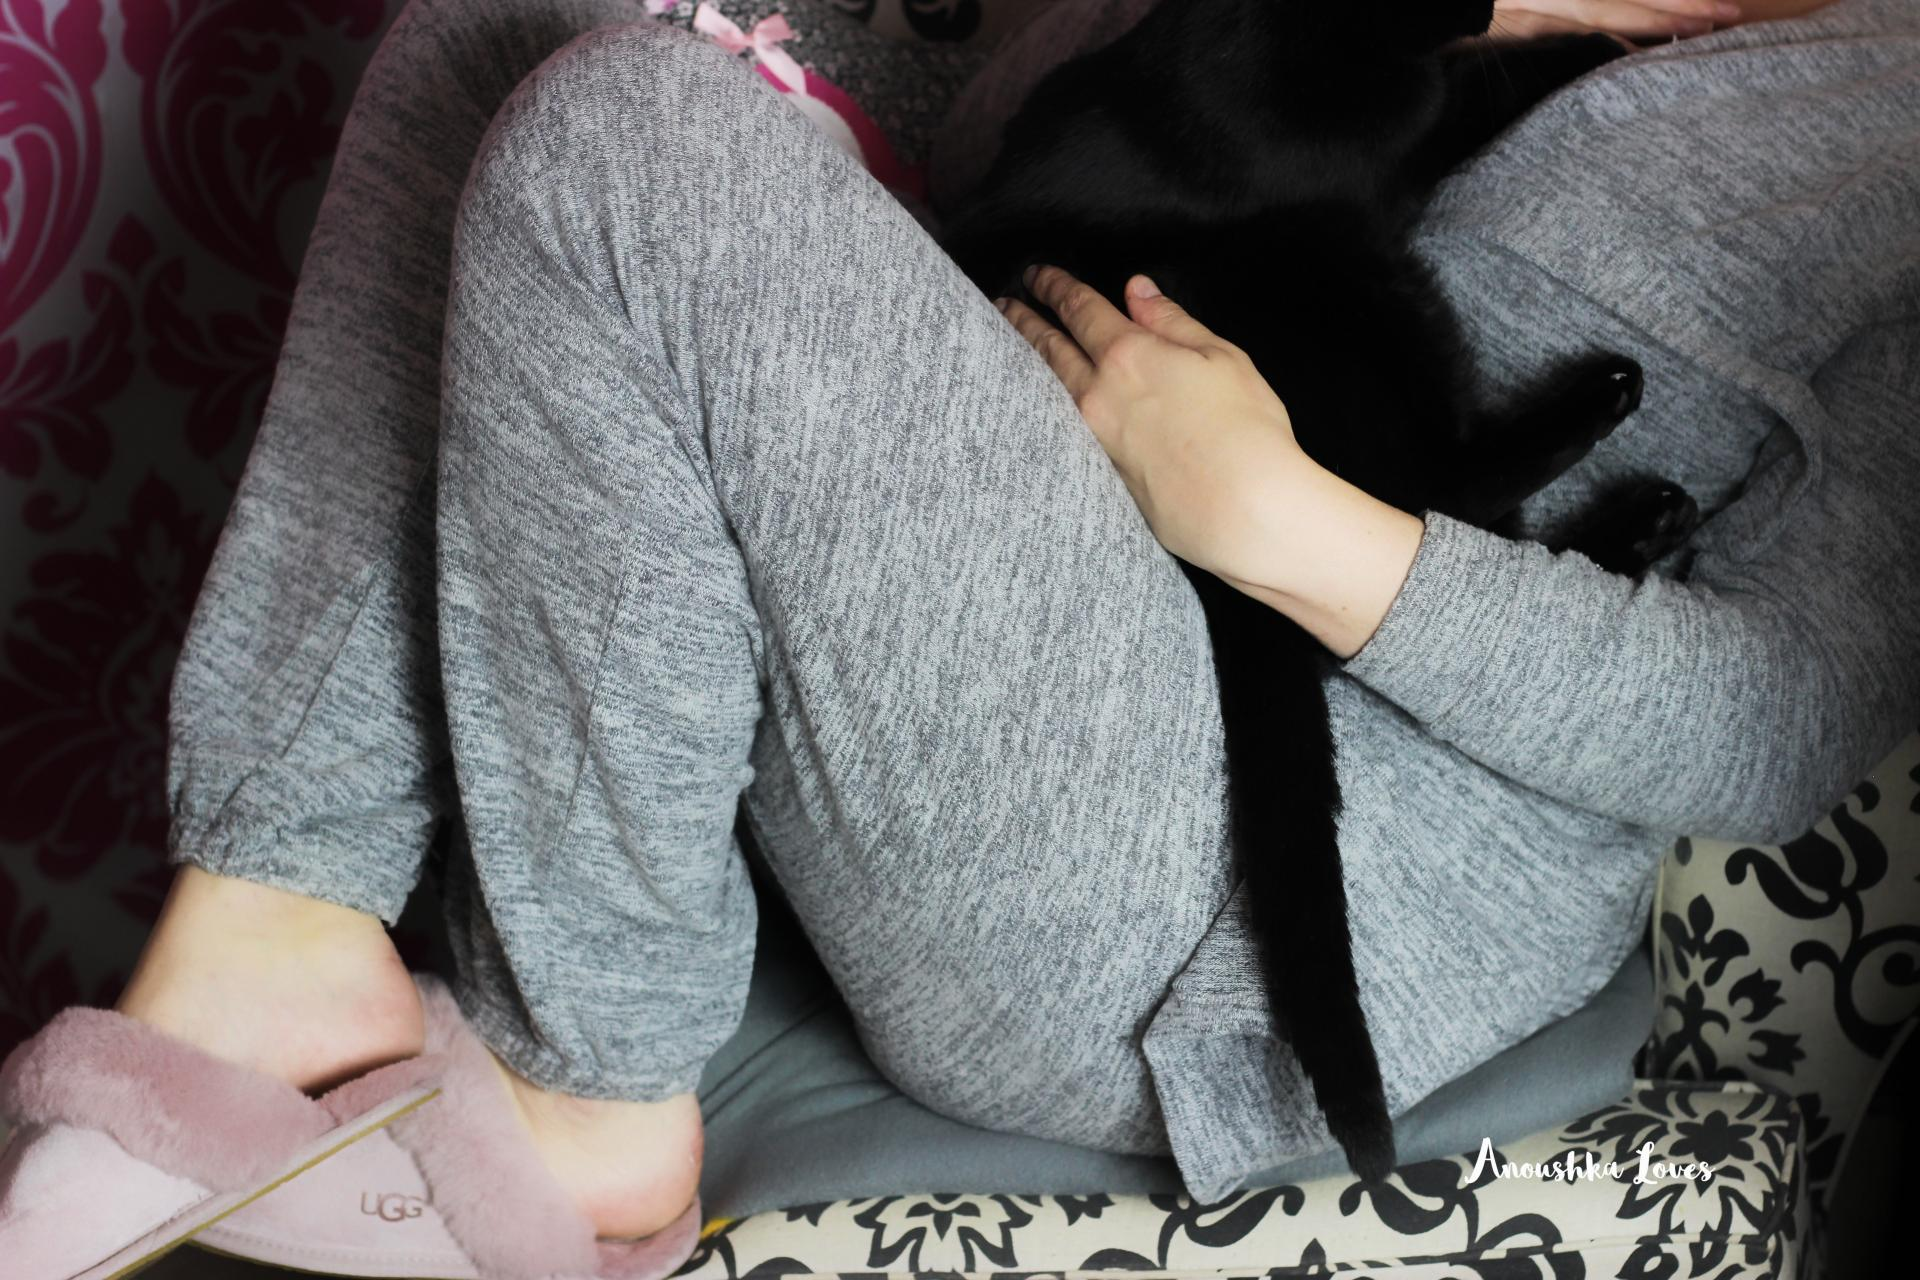 Happiness planner pour moi grey marl loungewear